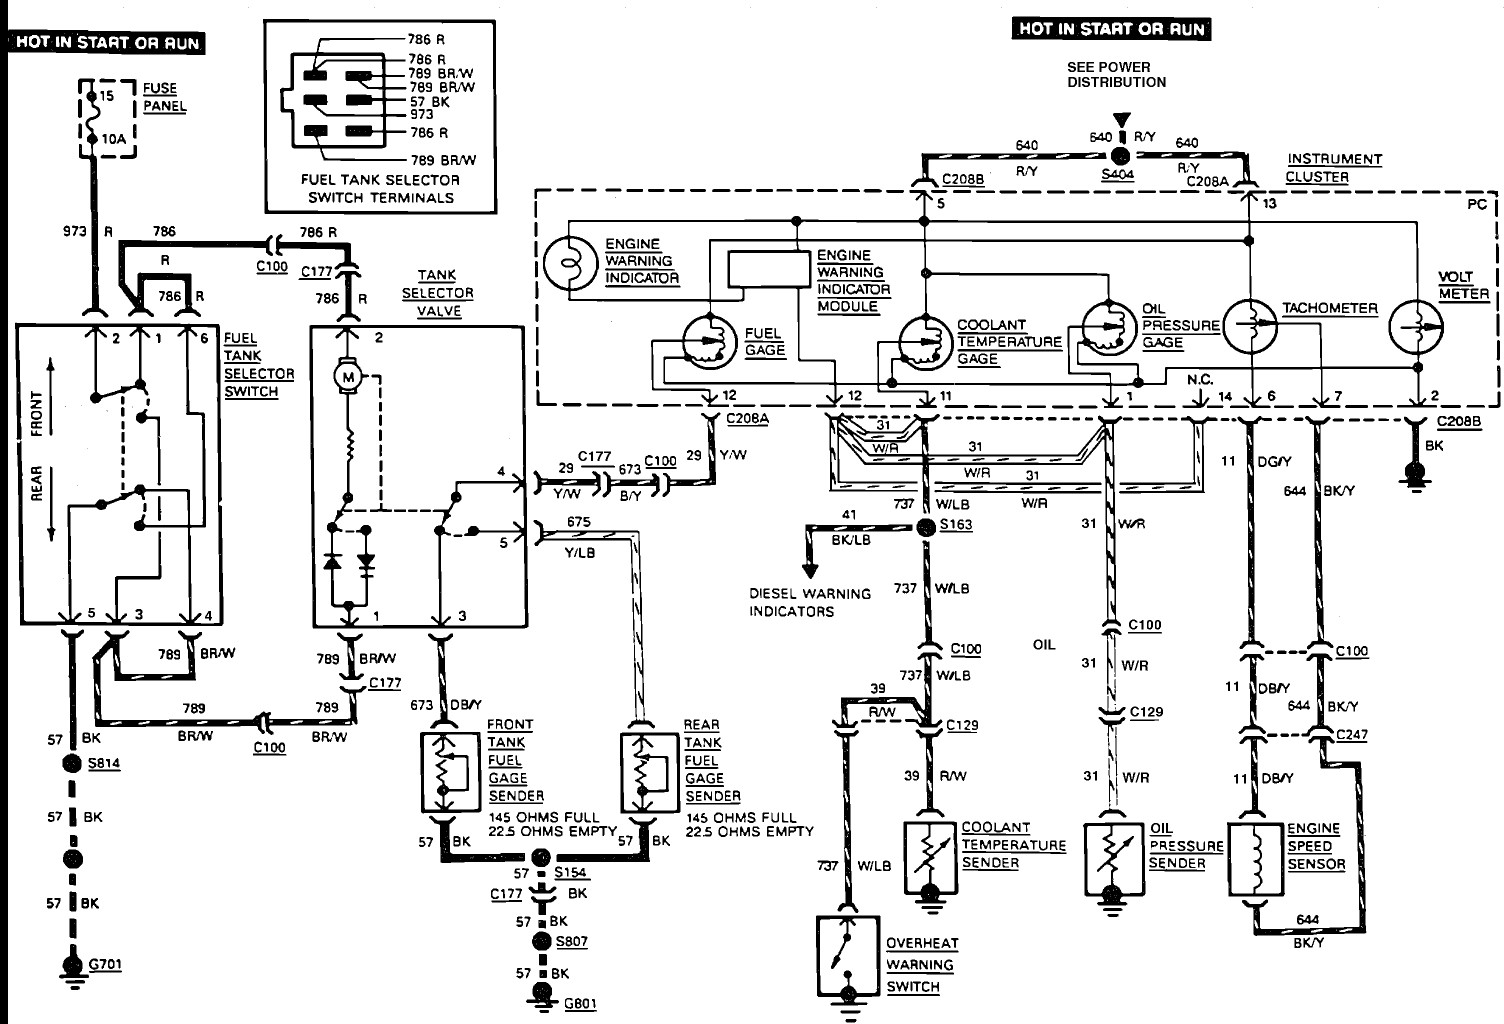 2005 ford F150 Ignition Wiring Diagram Best ford Truck Technical 1989 ford E350 Fuse Diagram